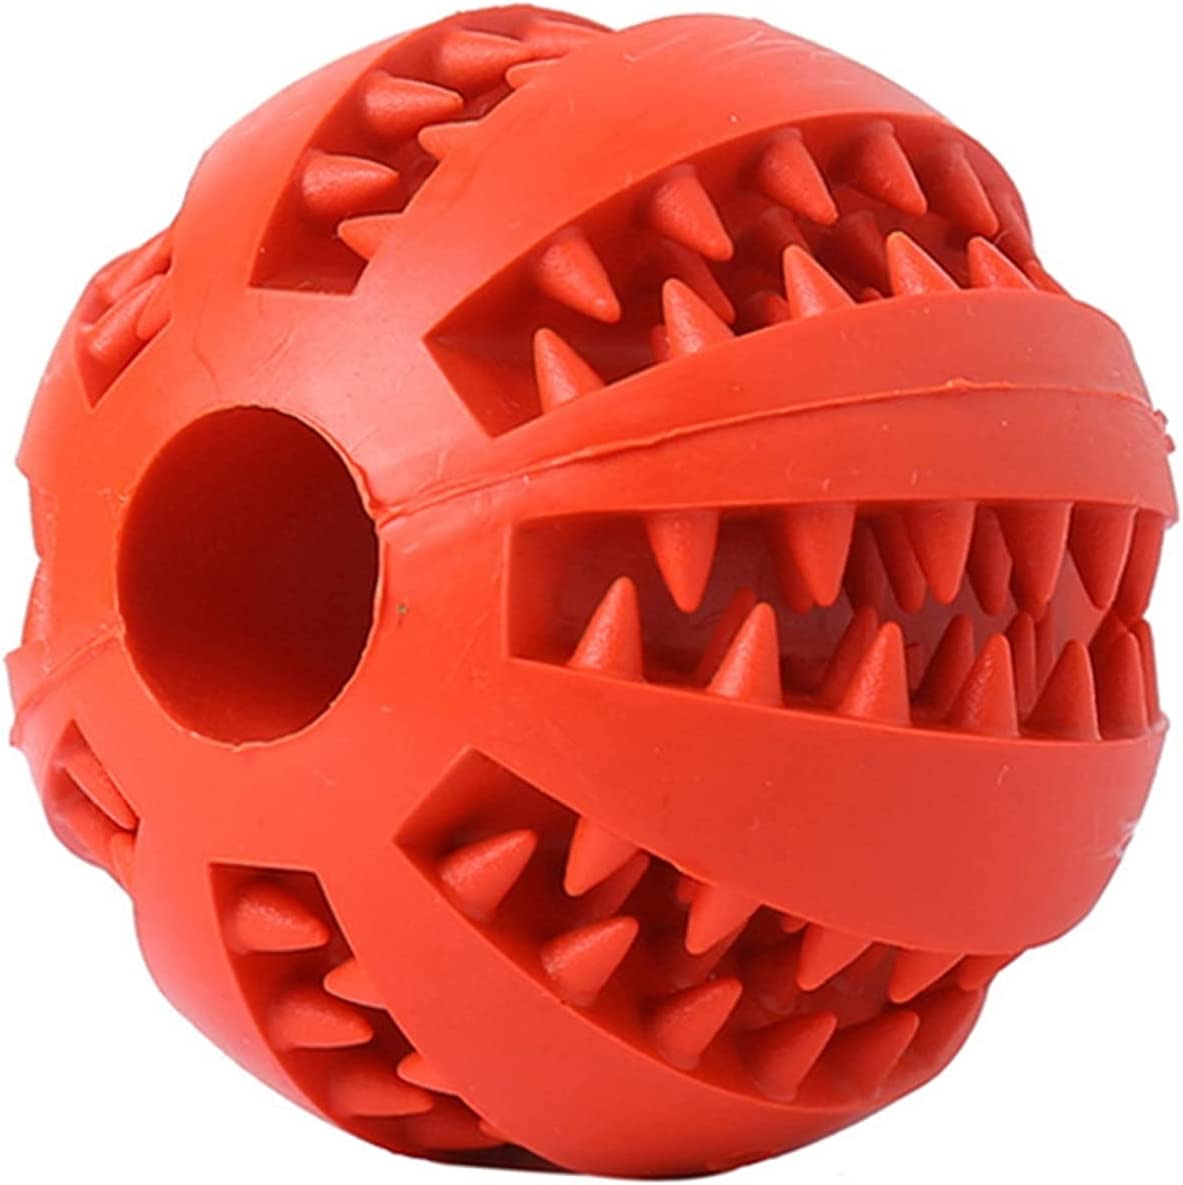 LUBINGT Our shop most popular pet Toy Soft Toys for Puppy Milwaukee Mall Fun Ball Dogs Dog Rubber